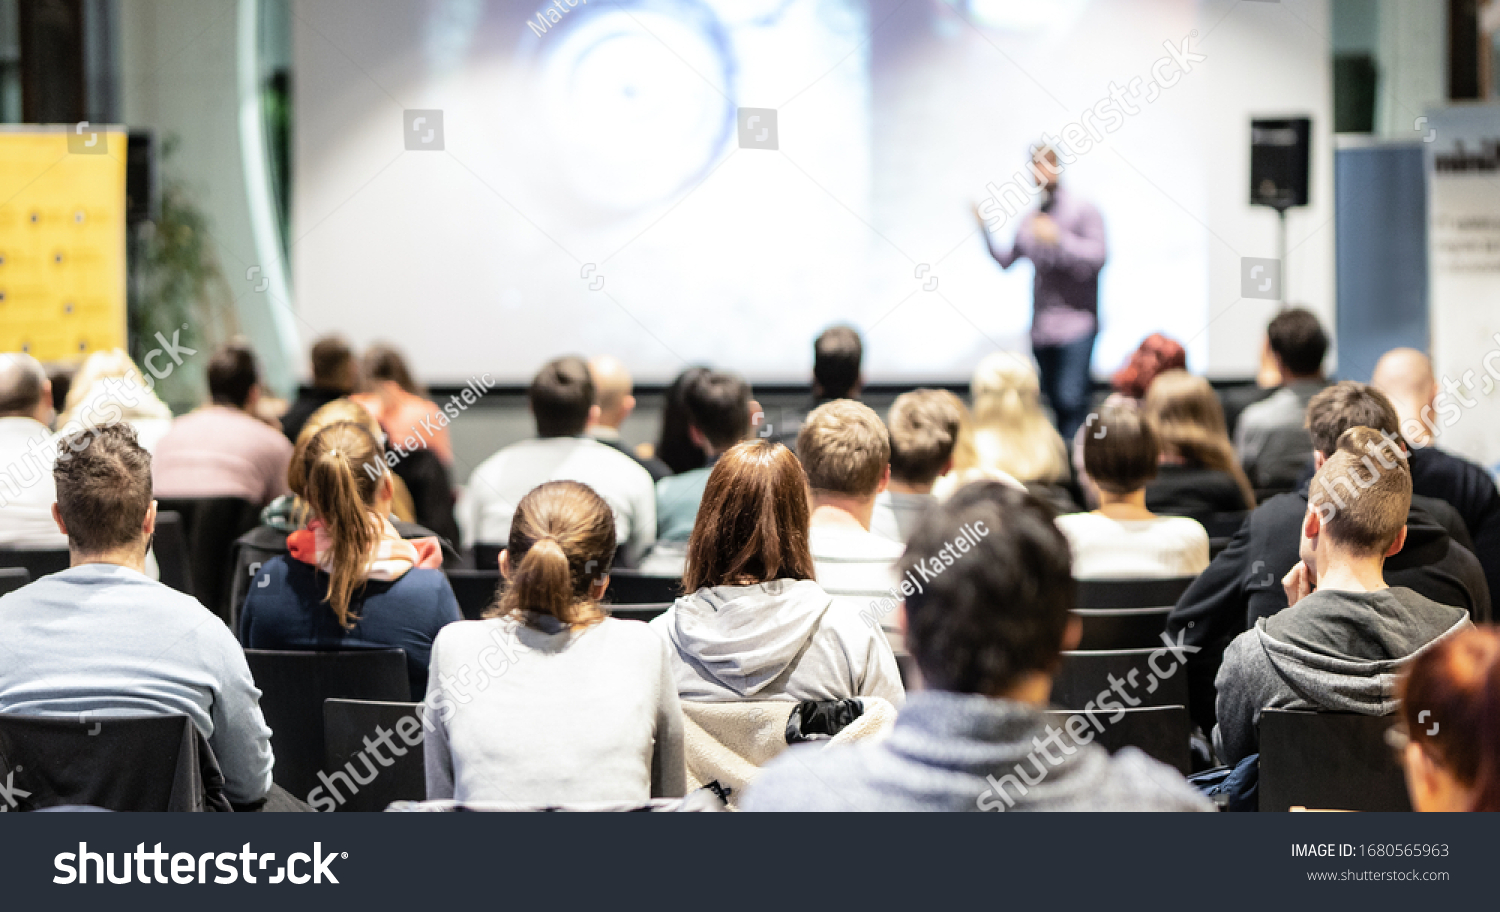 Speaker giving a talk in conference hall at business event. Rear view of unrecognizable people in audience at the conference hall. Business and entrepreneurship concept. #1680565963